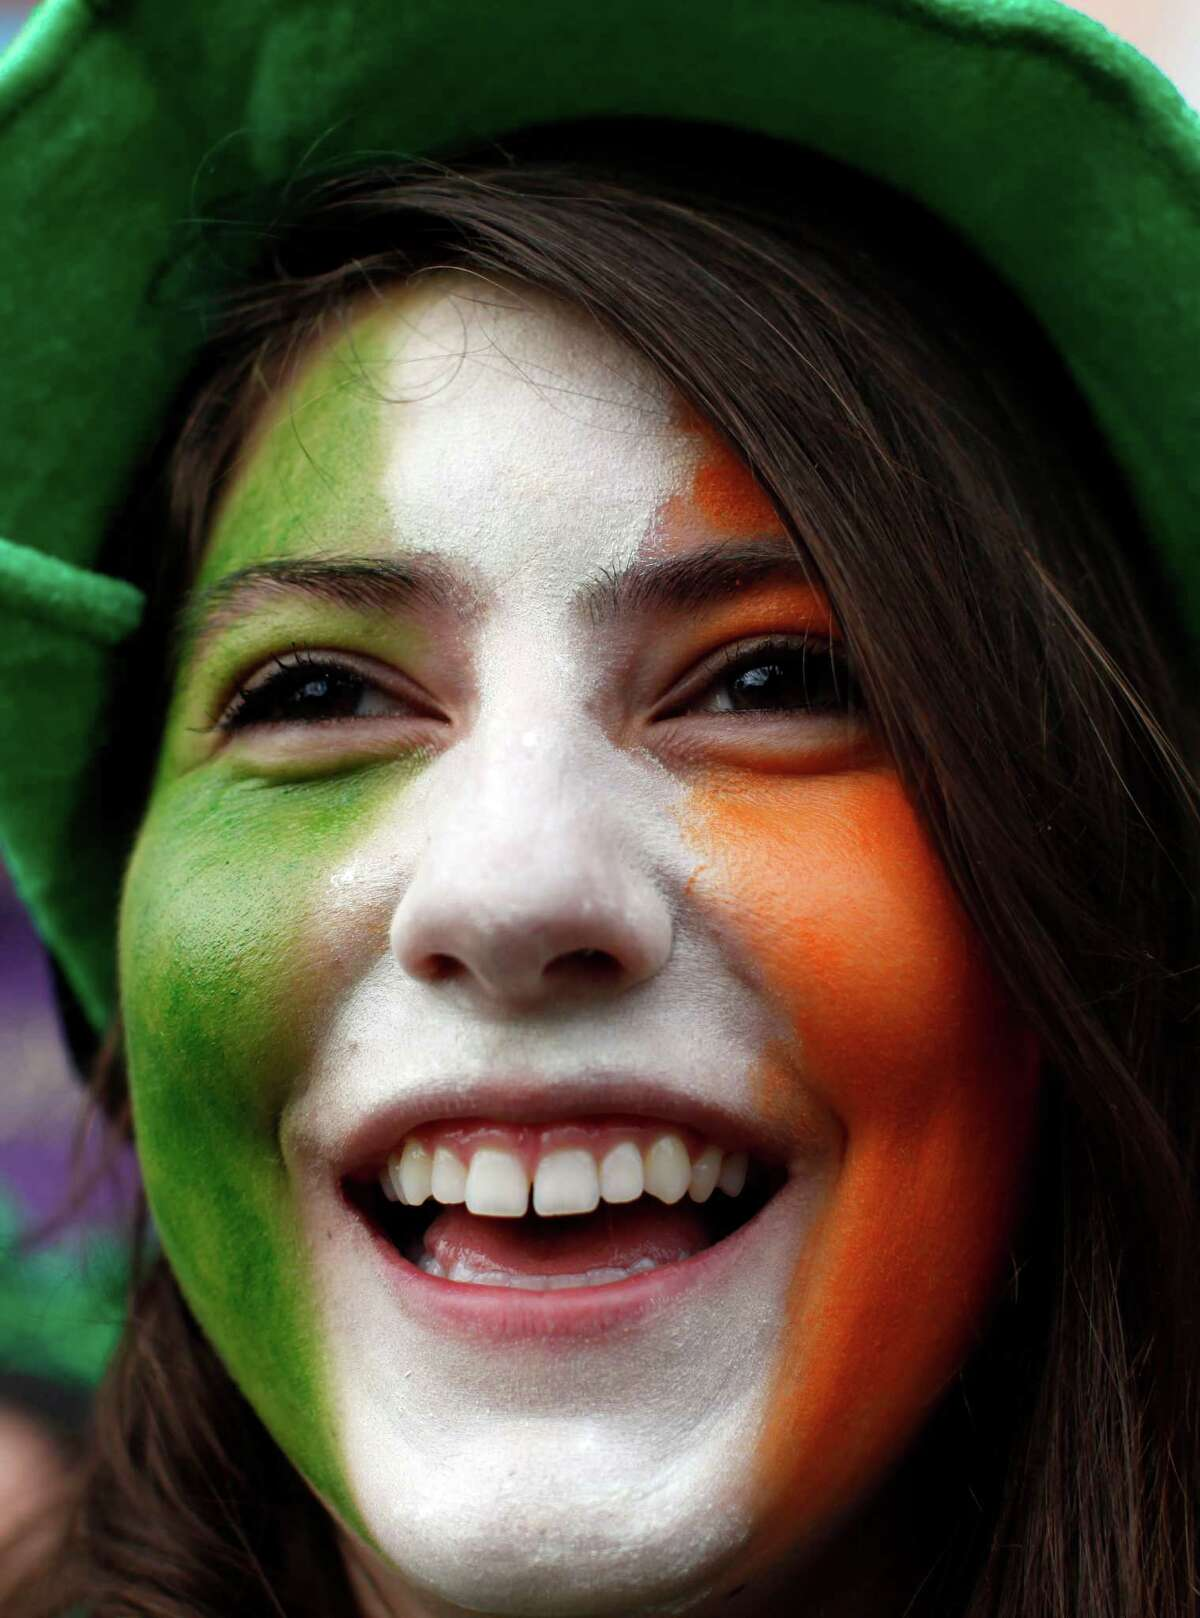 A spectator with the flag of Ireland painted on her face watches the parade during St Patrick's Day festivities in Dublin.